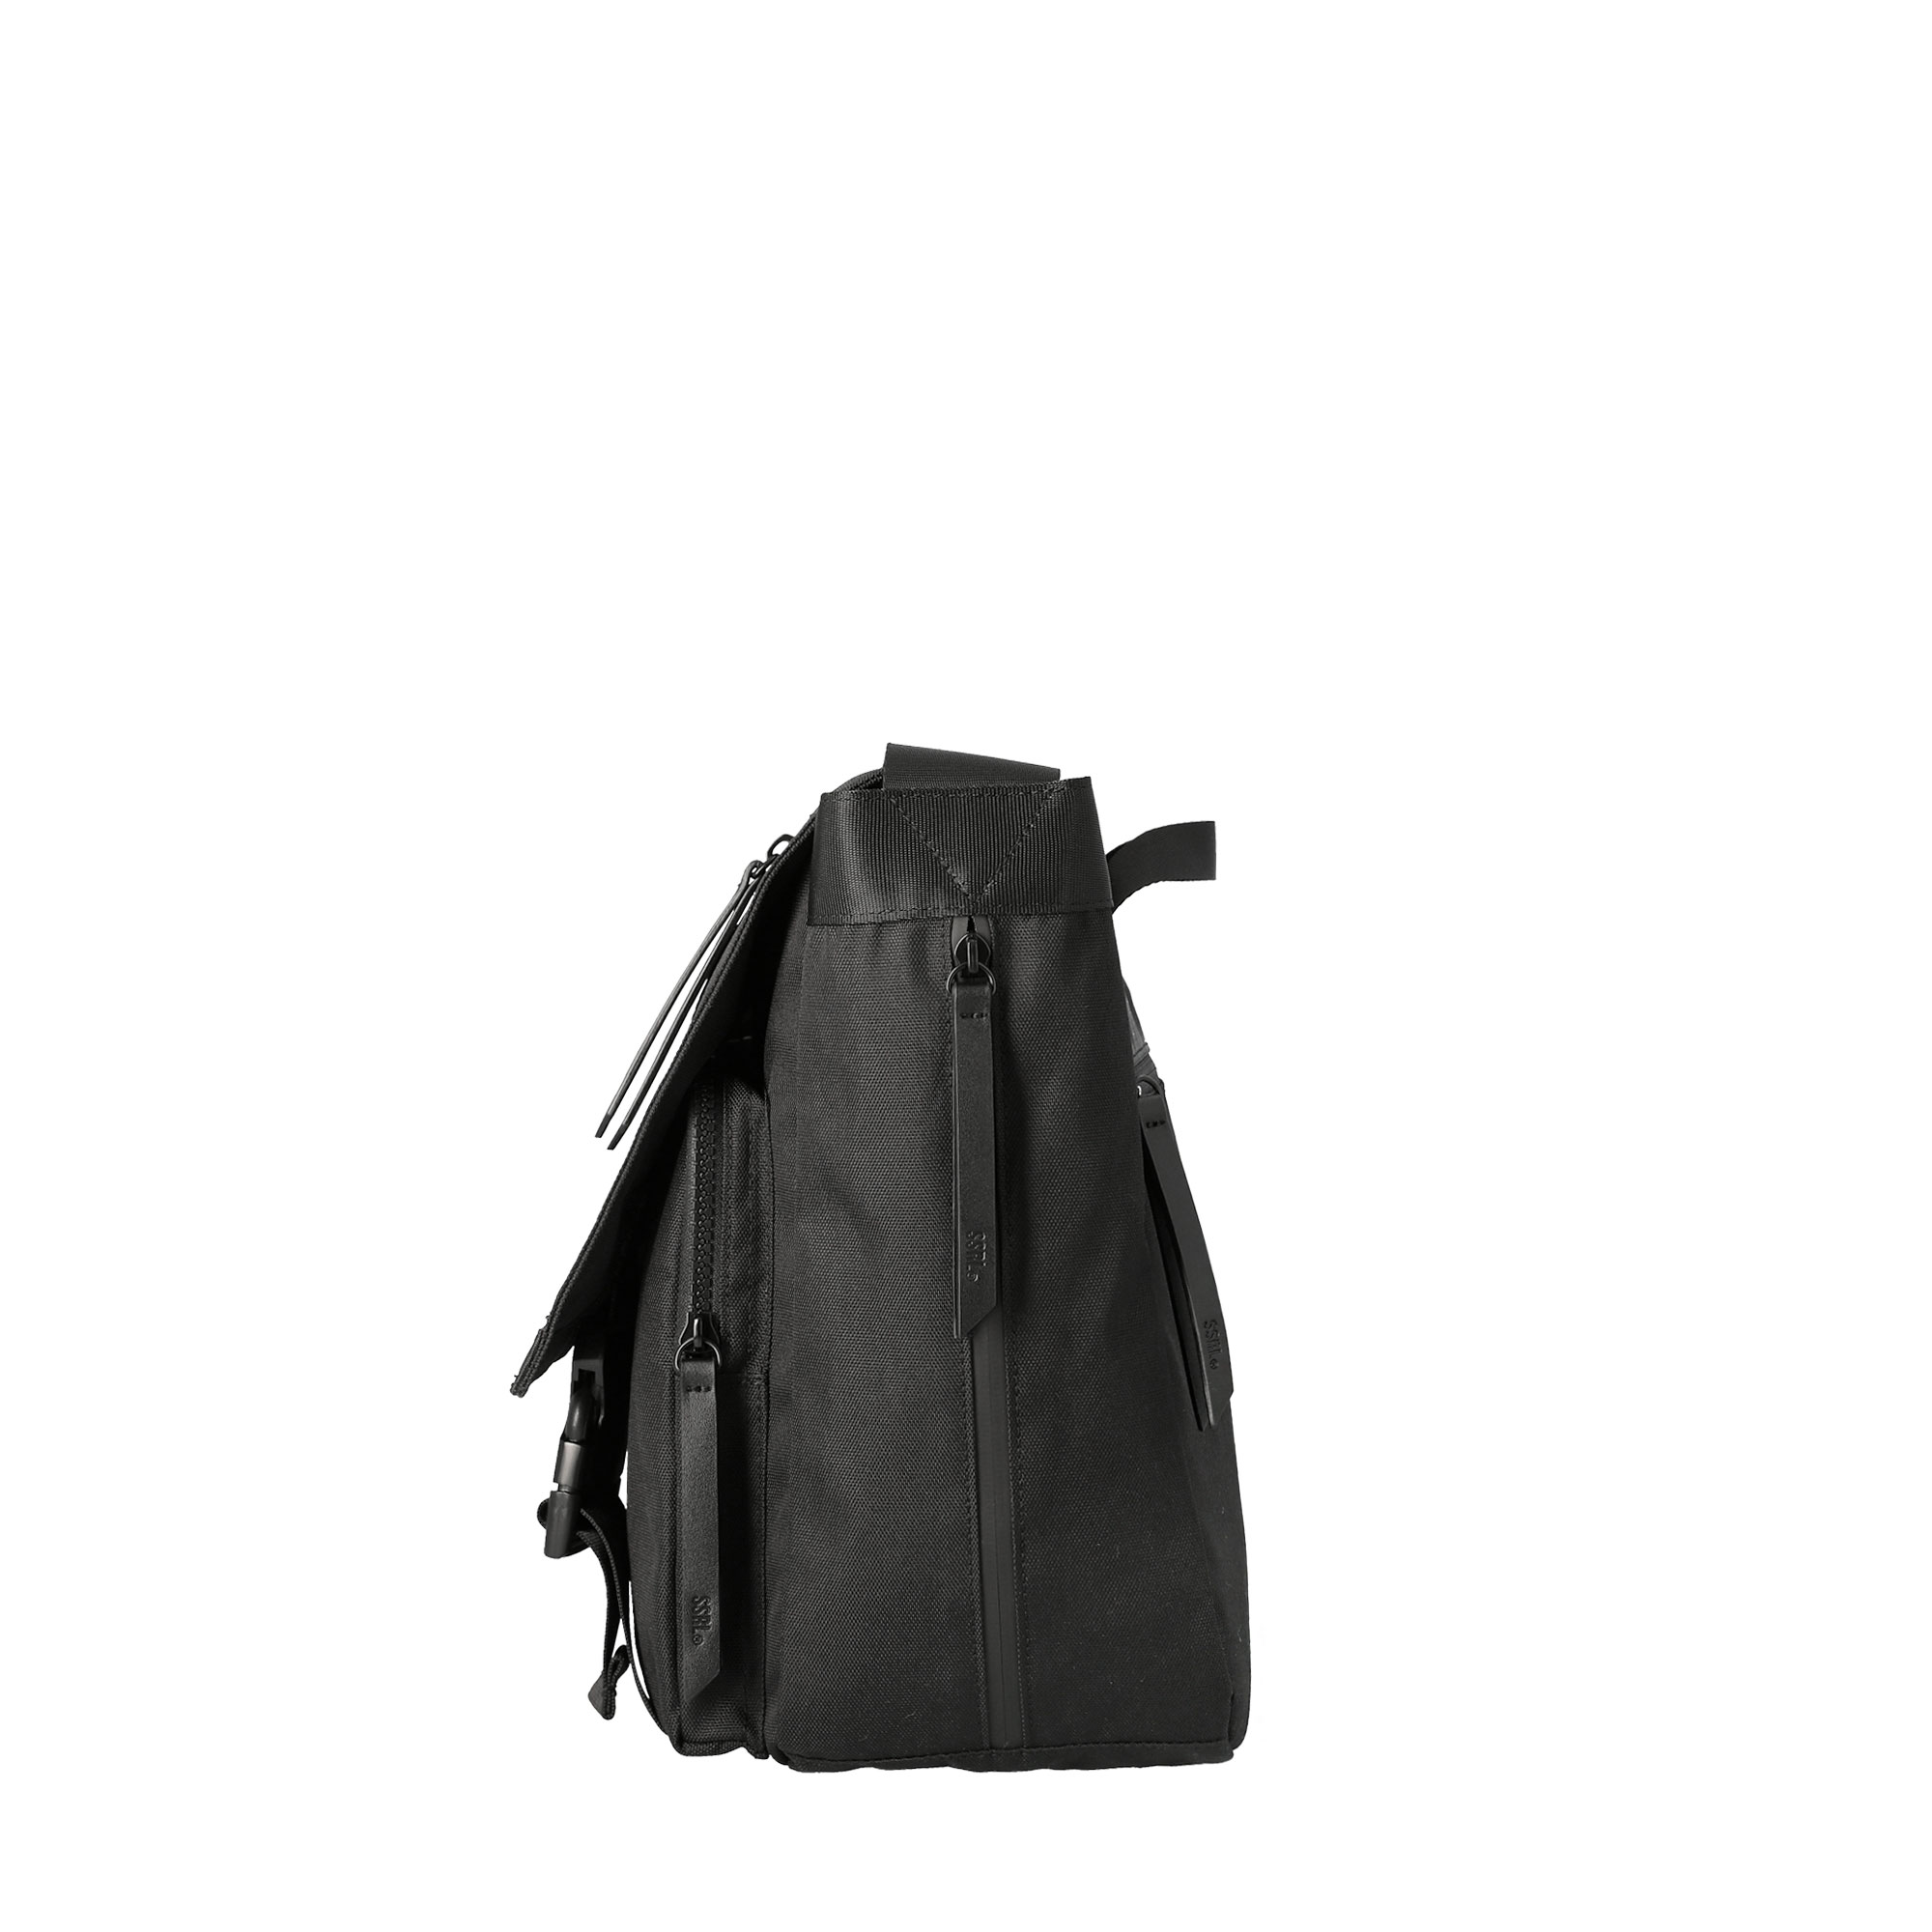 dual pocket messenger bag / black